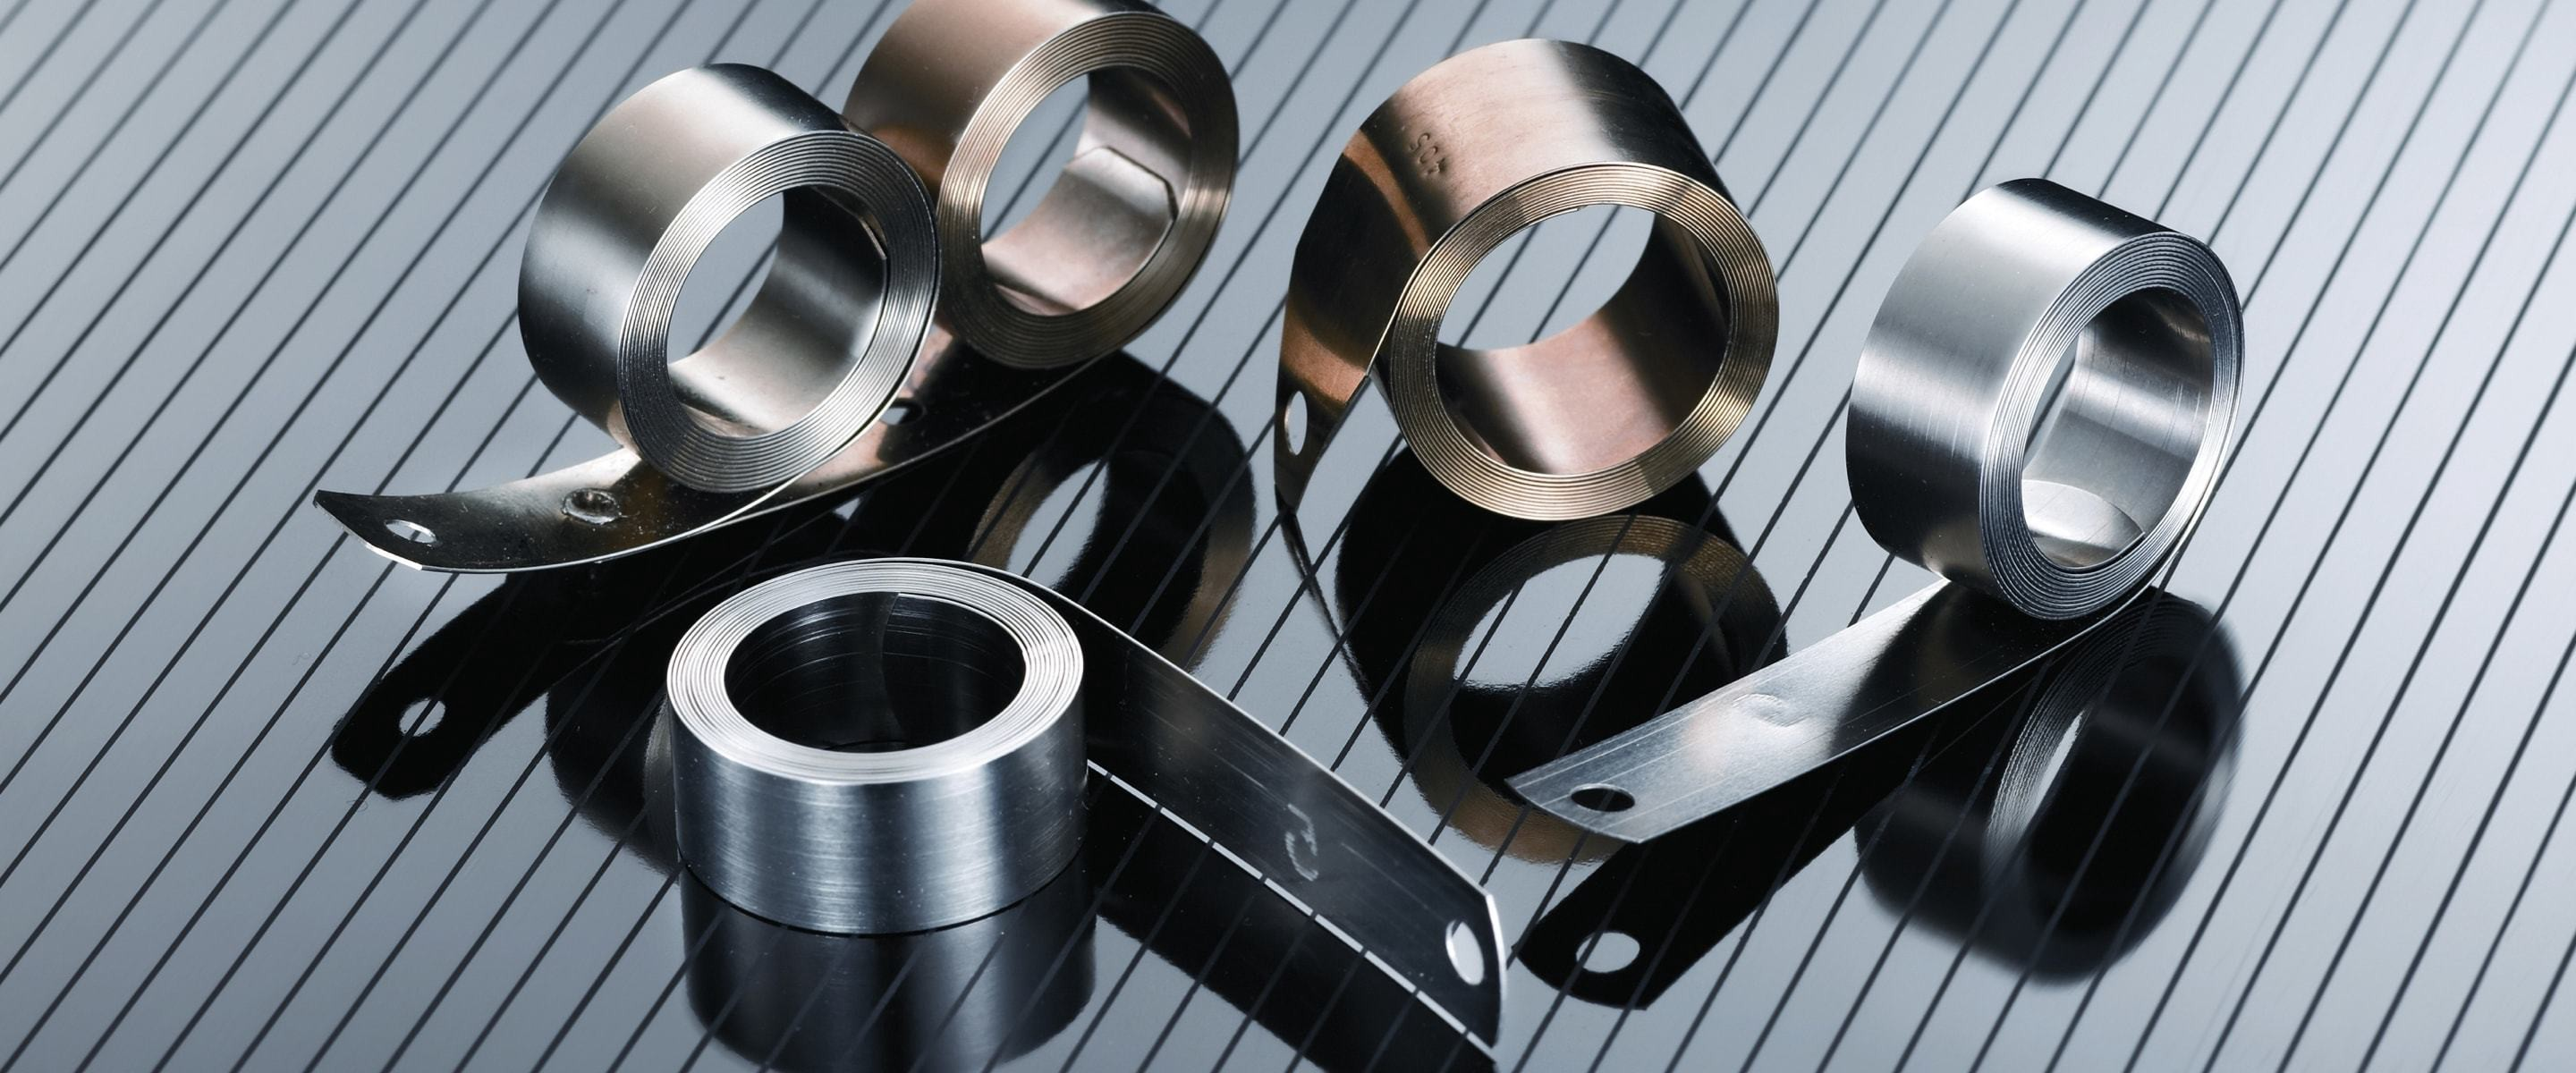 Five sheet rolls of Ulbrich Stainless Steels & Special Metals, Inc metal. Three of the five rolls are silver and two of the five rolls are bronze.